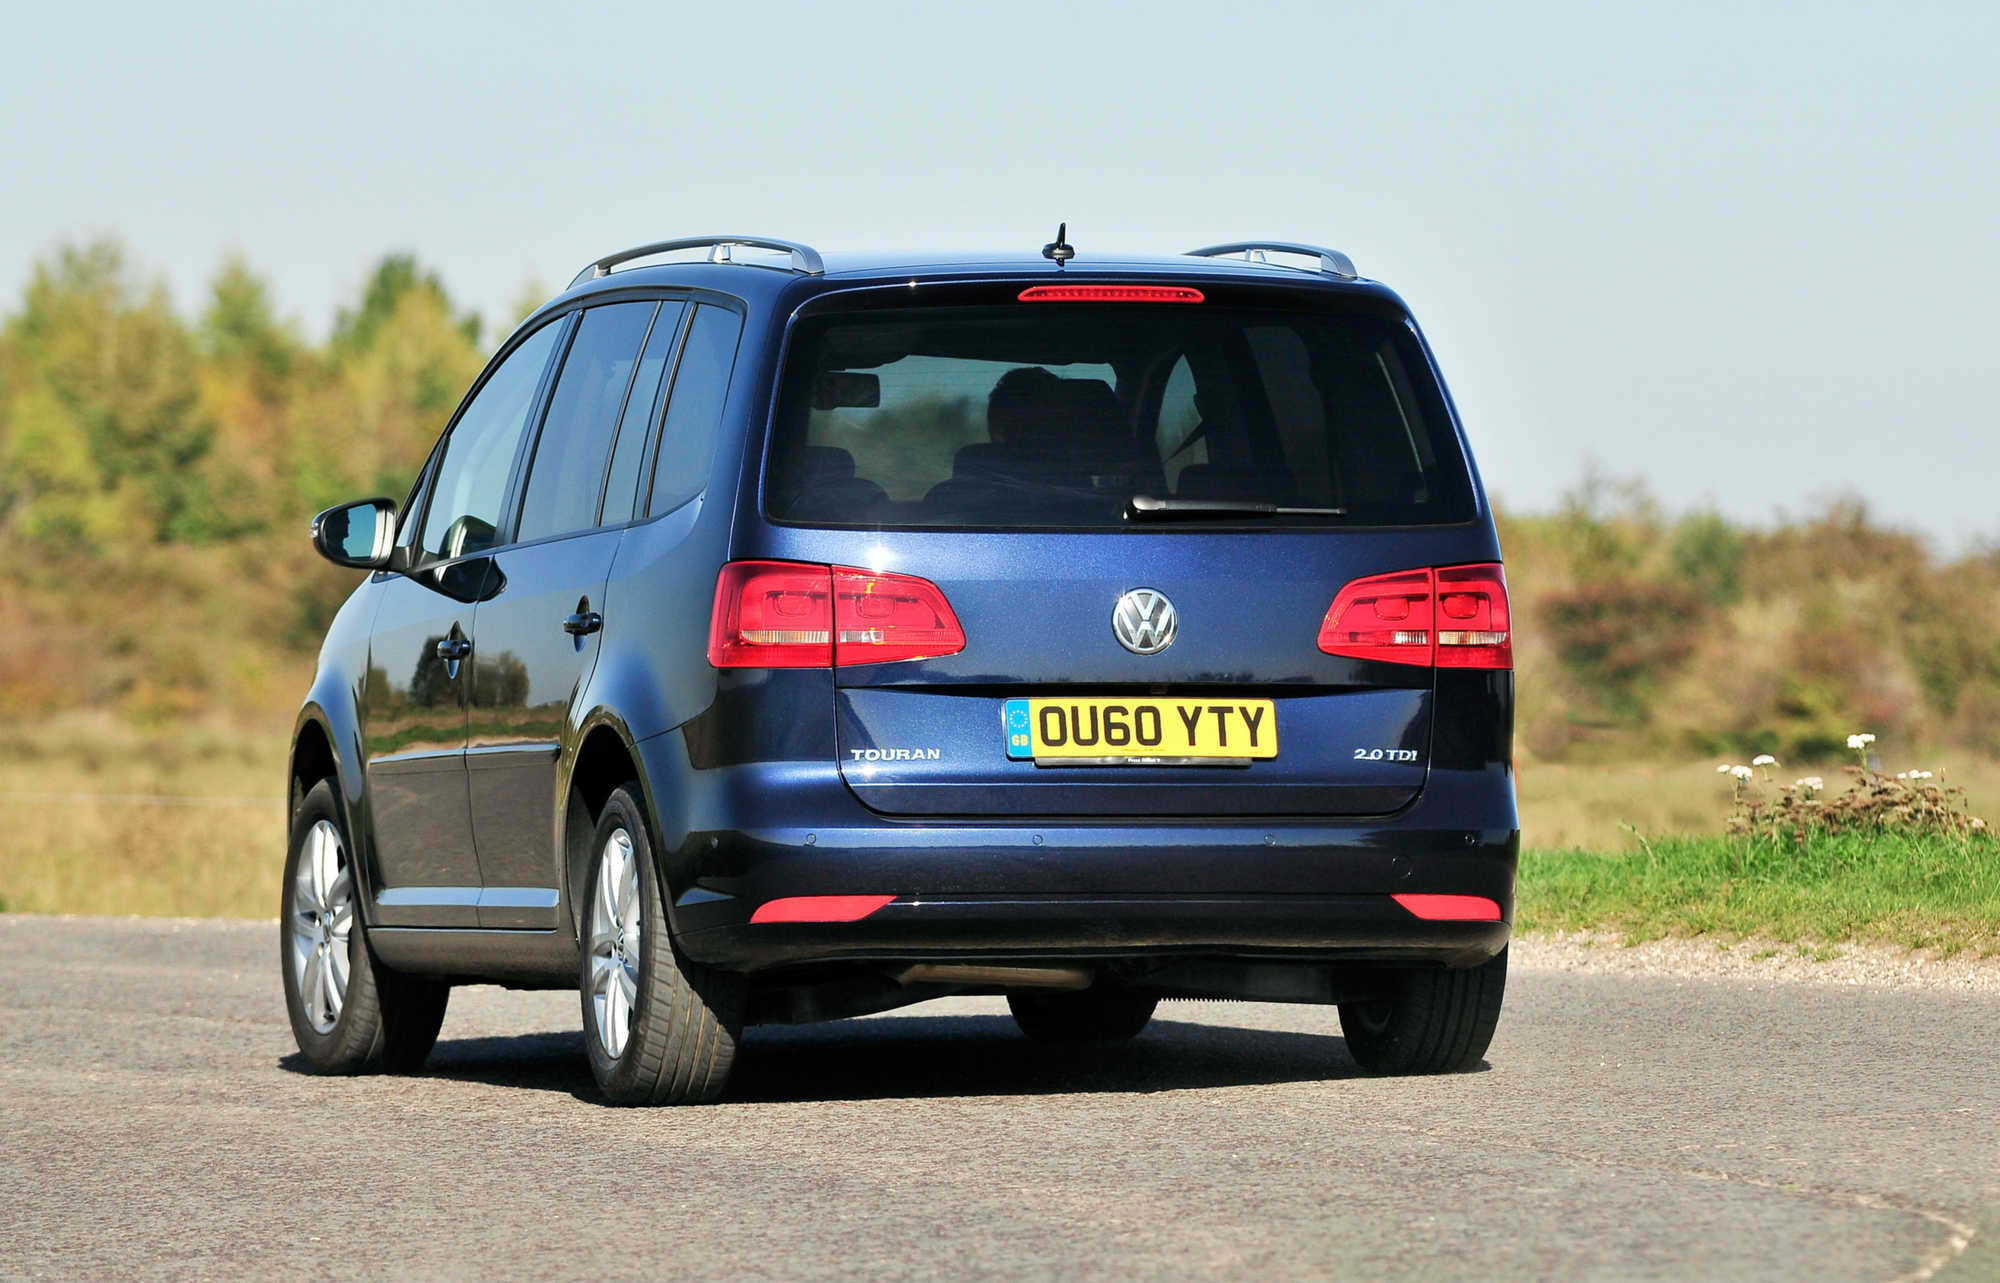 volkswagen touran mpv review car keys. Black Bedroom Furniture Sets. Home Design Ideas